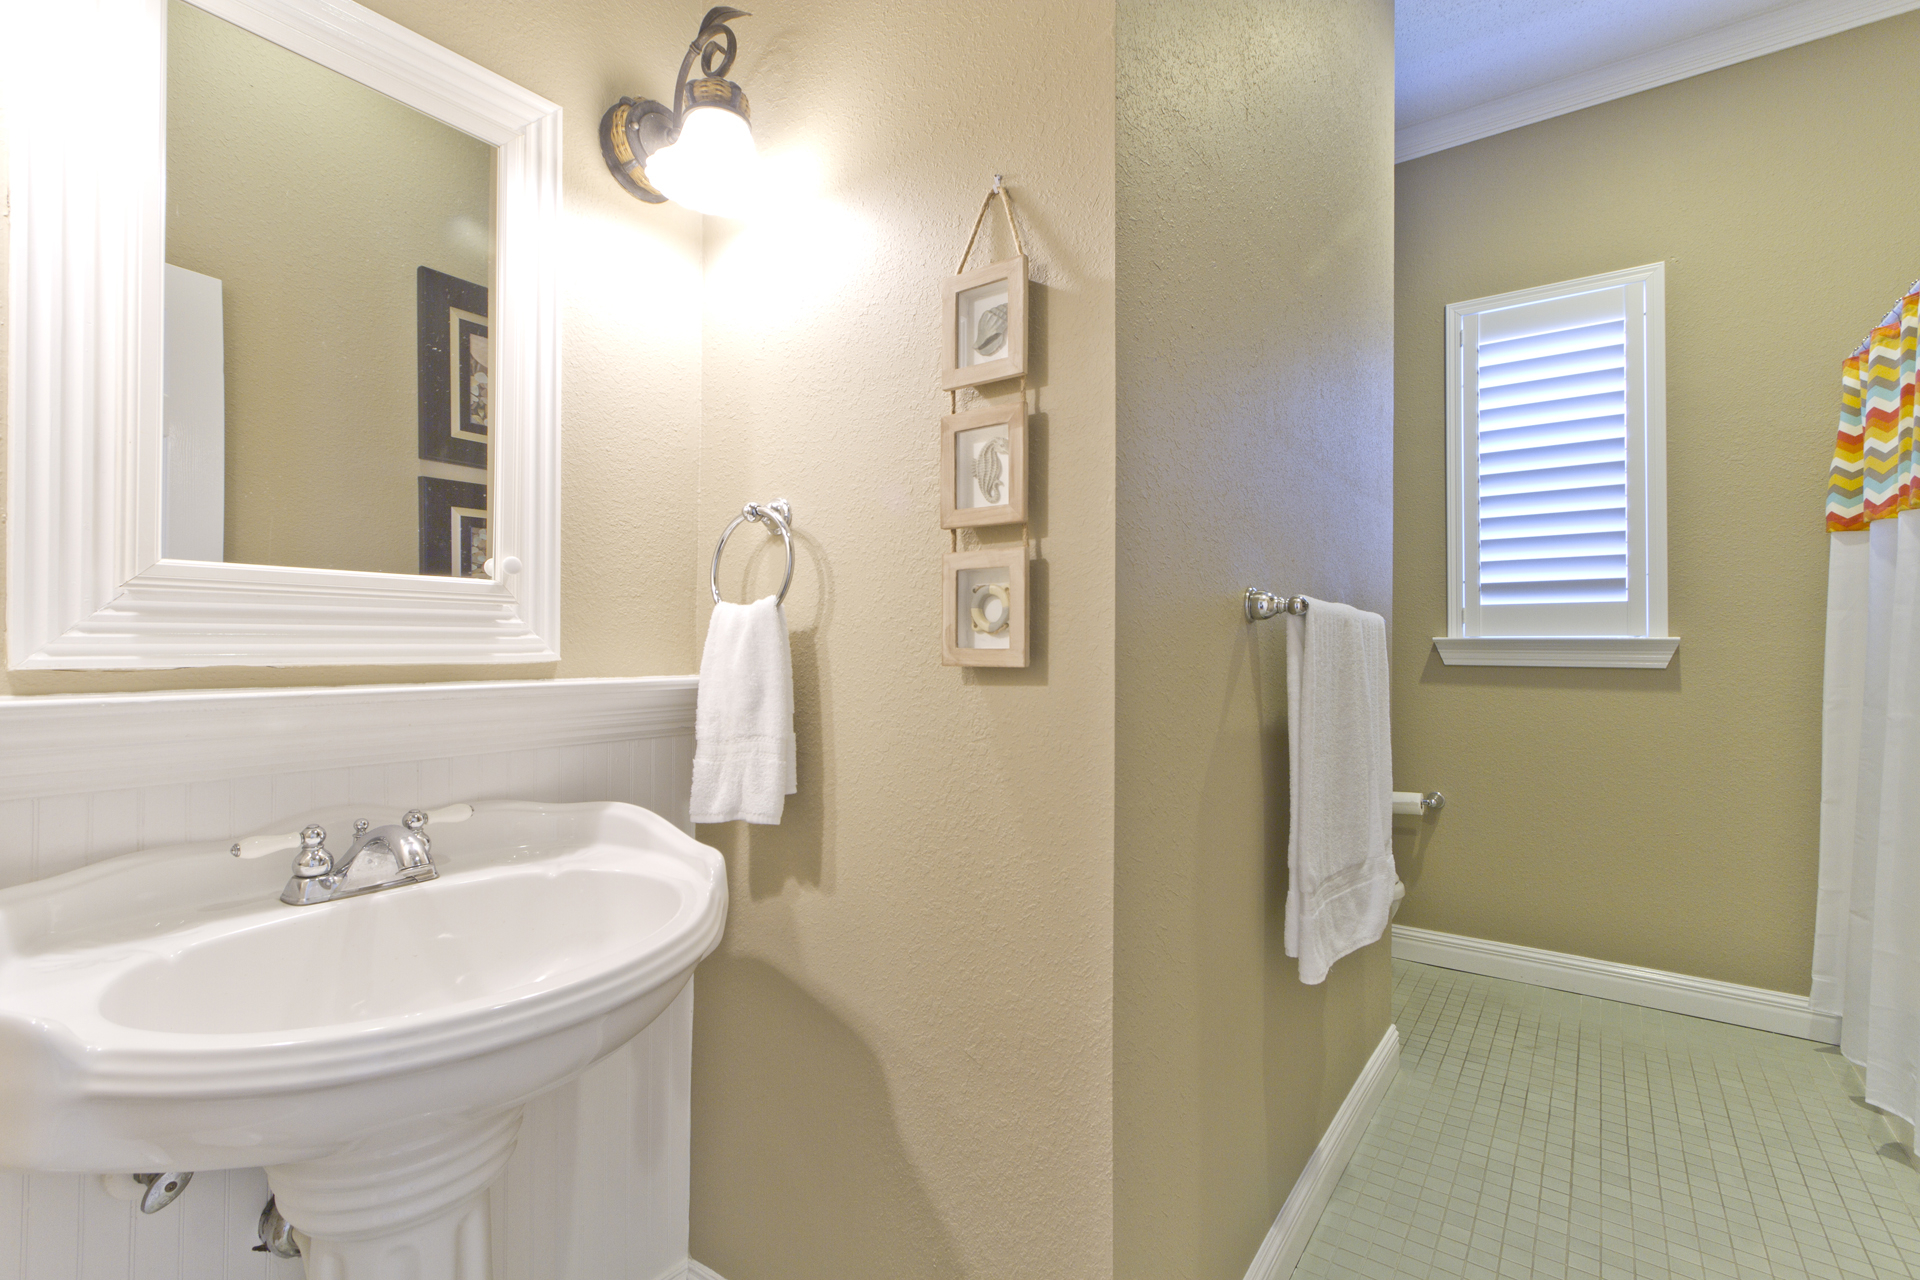 Upstairs guest bathroom with bathtub and shower